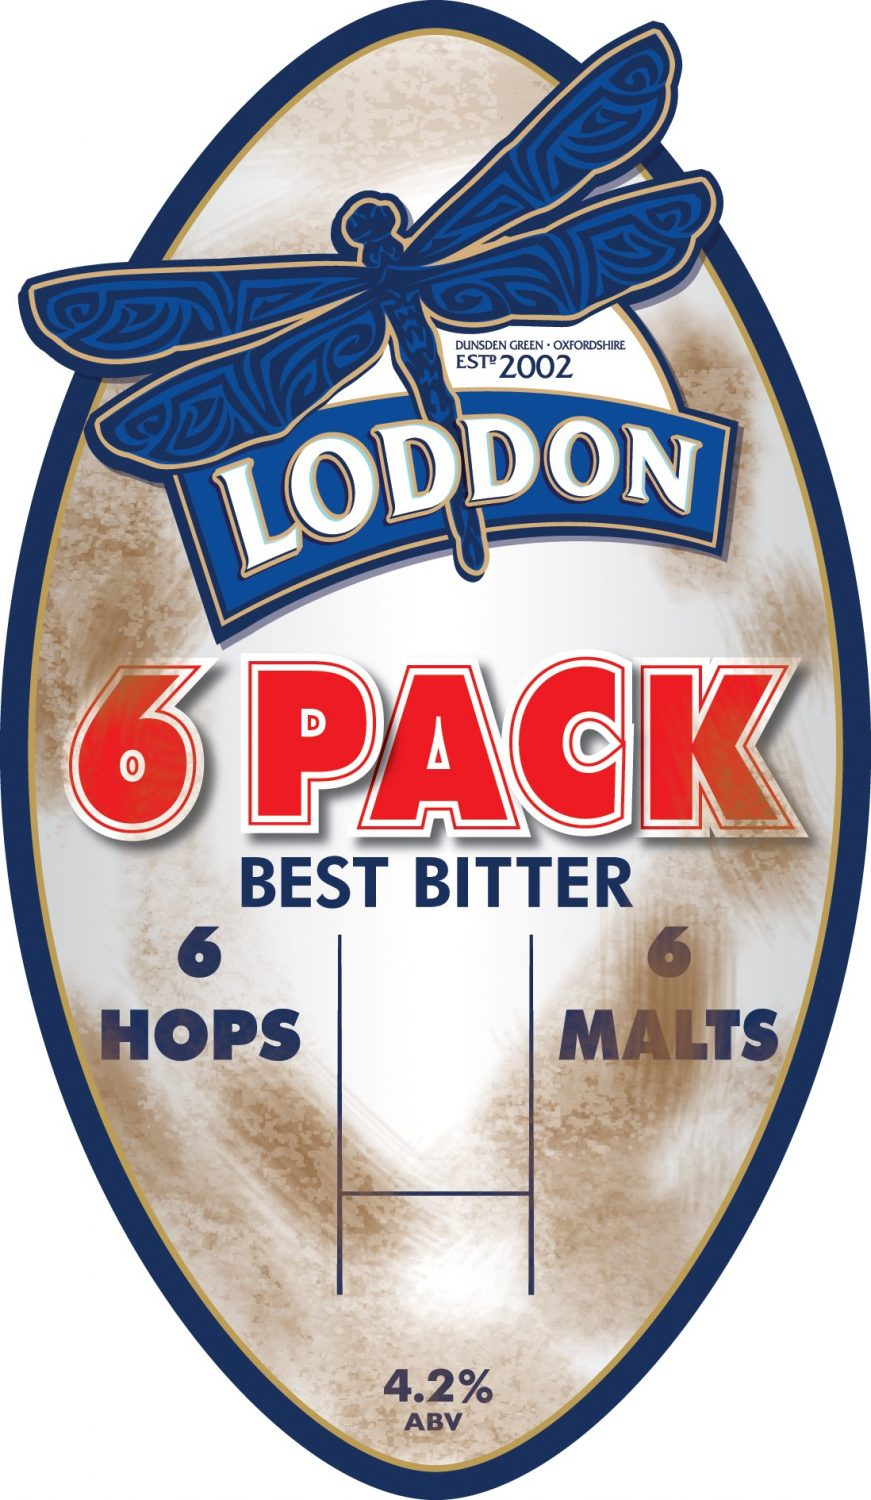 Loddon Brewery 6 Pack